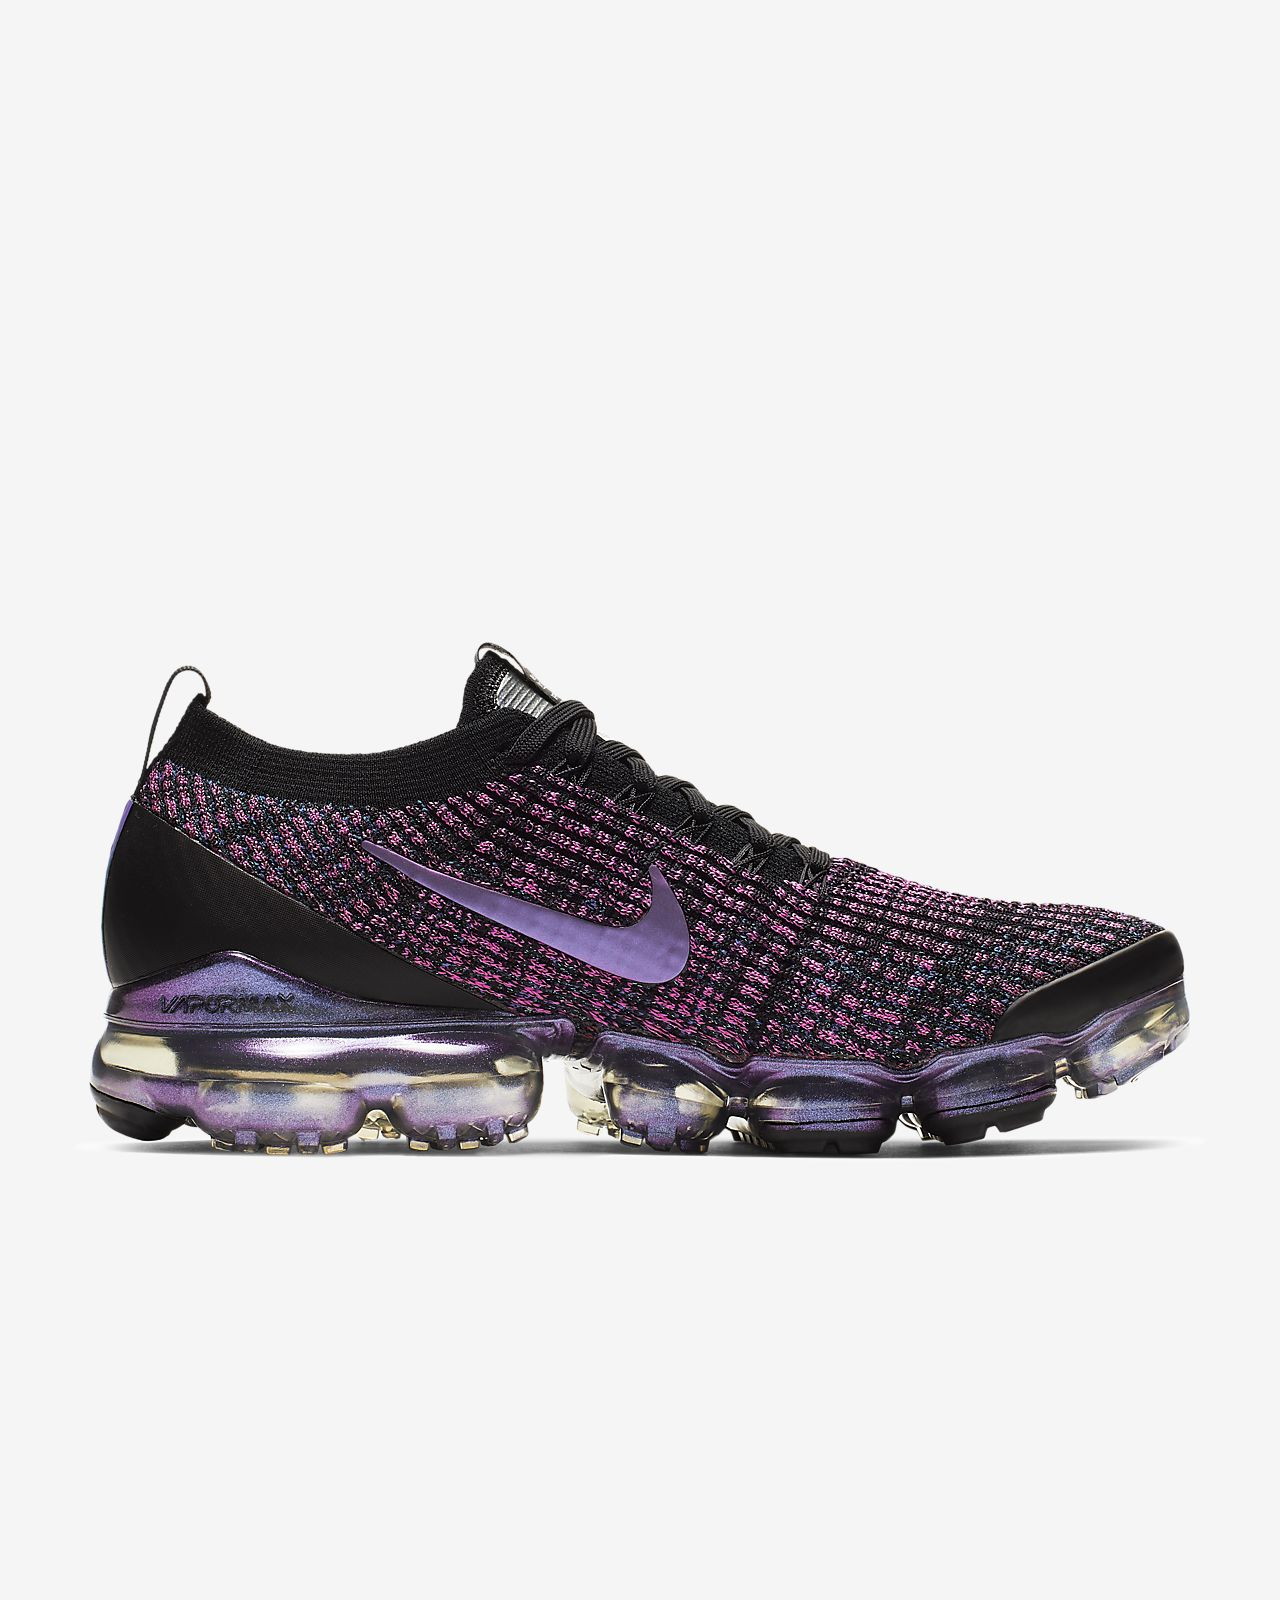 Pour Nike Flyknit Homme Air 3 Vapormax Chaussure DH9YEIW2